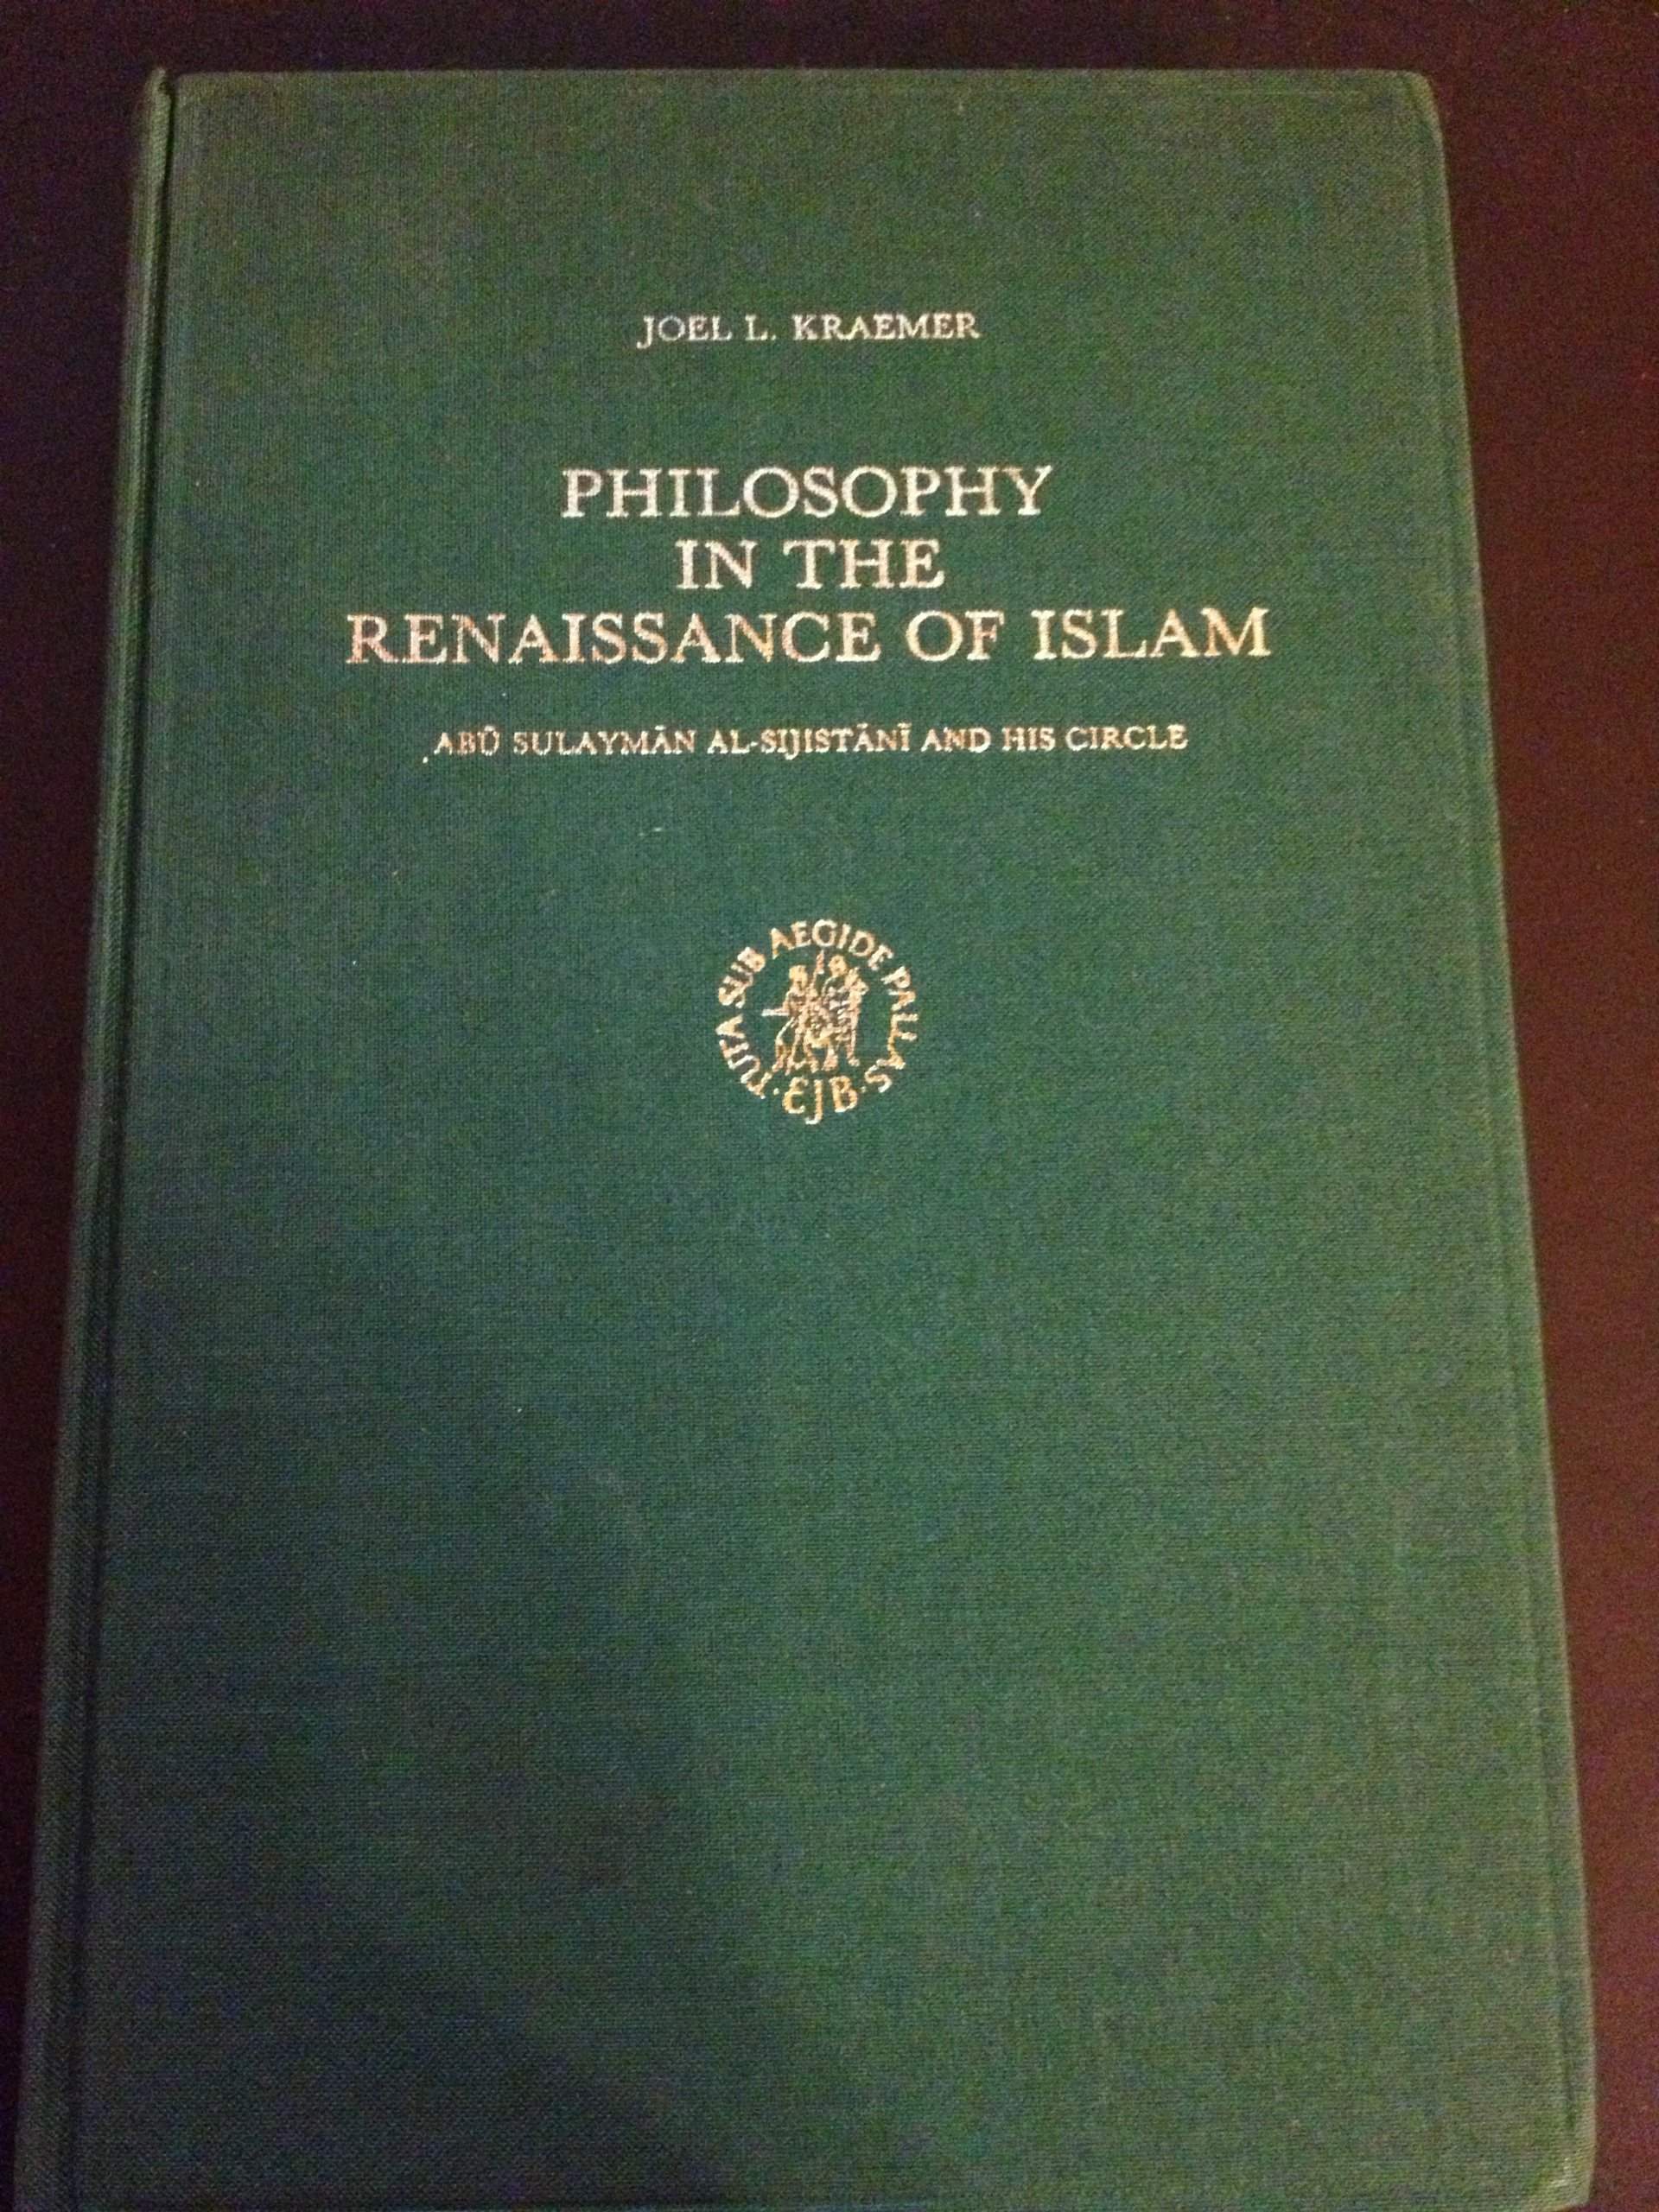 Philosophy In The Renaissance Of Islam  Abu Sulayman Al Sijistani And His Circle  Studies In Islamic Culture And History V. 8.